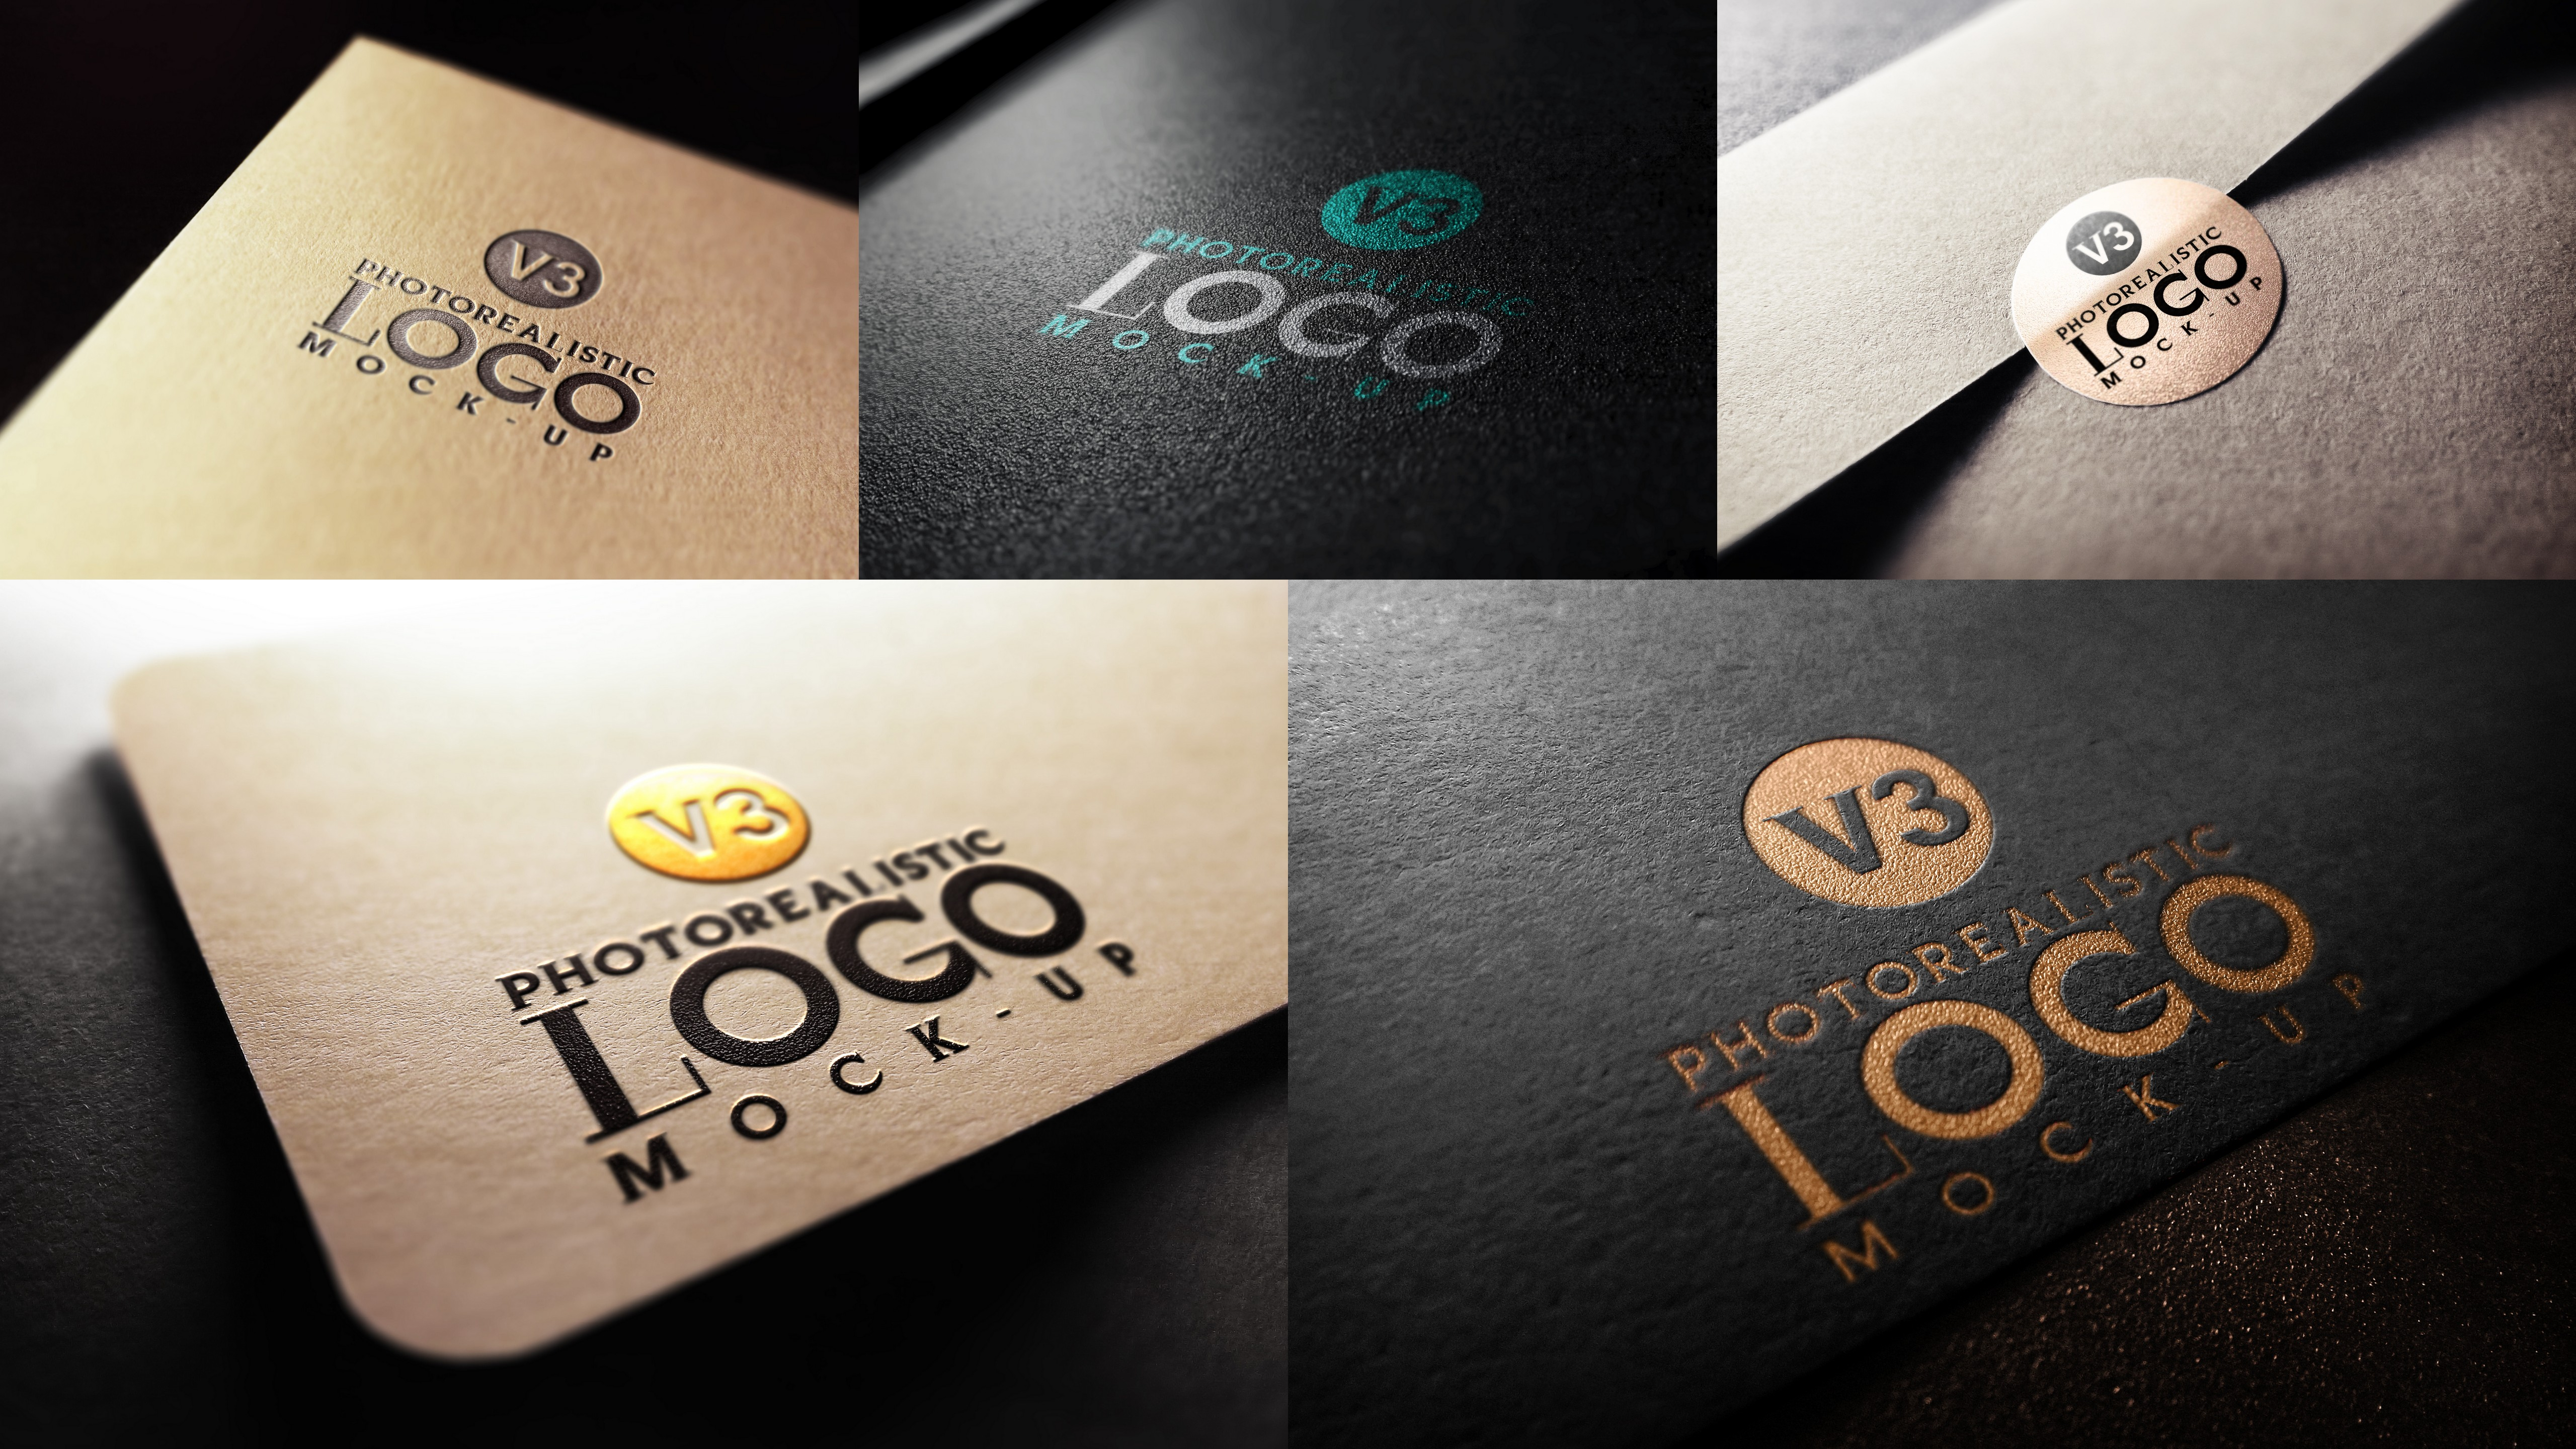 engrave your logo into 15 mockups